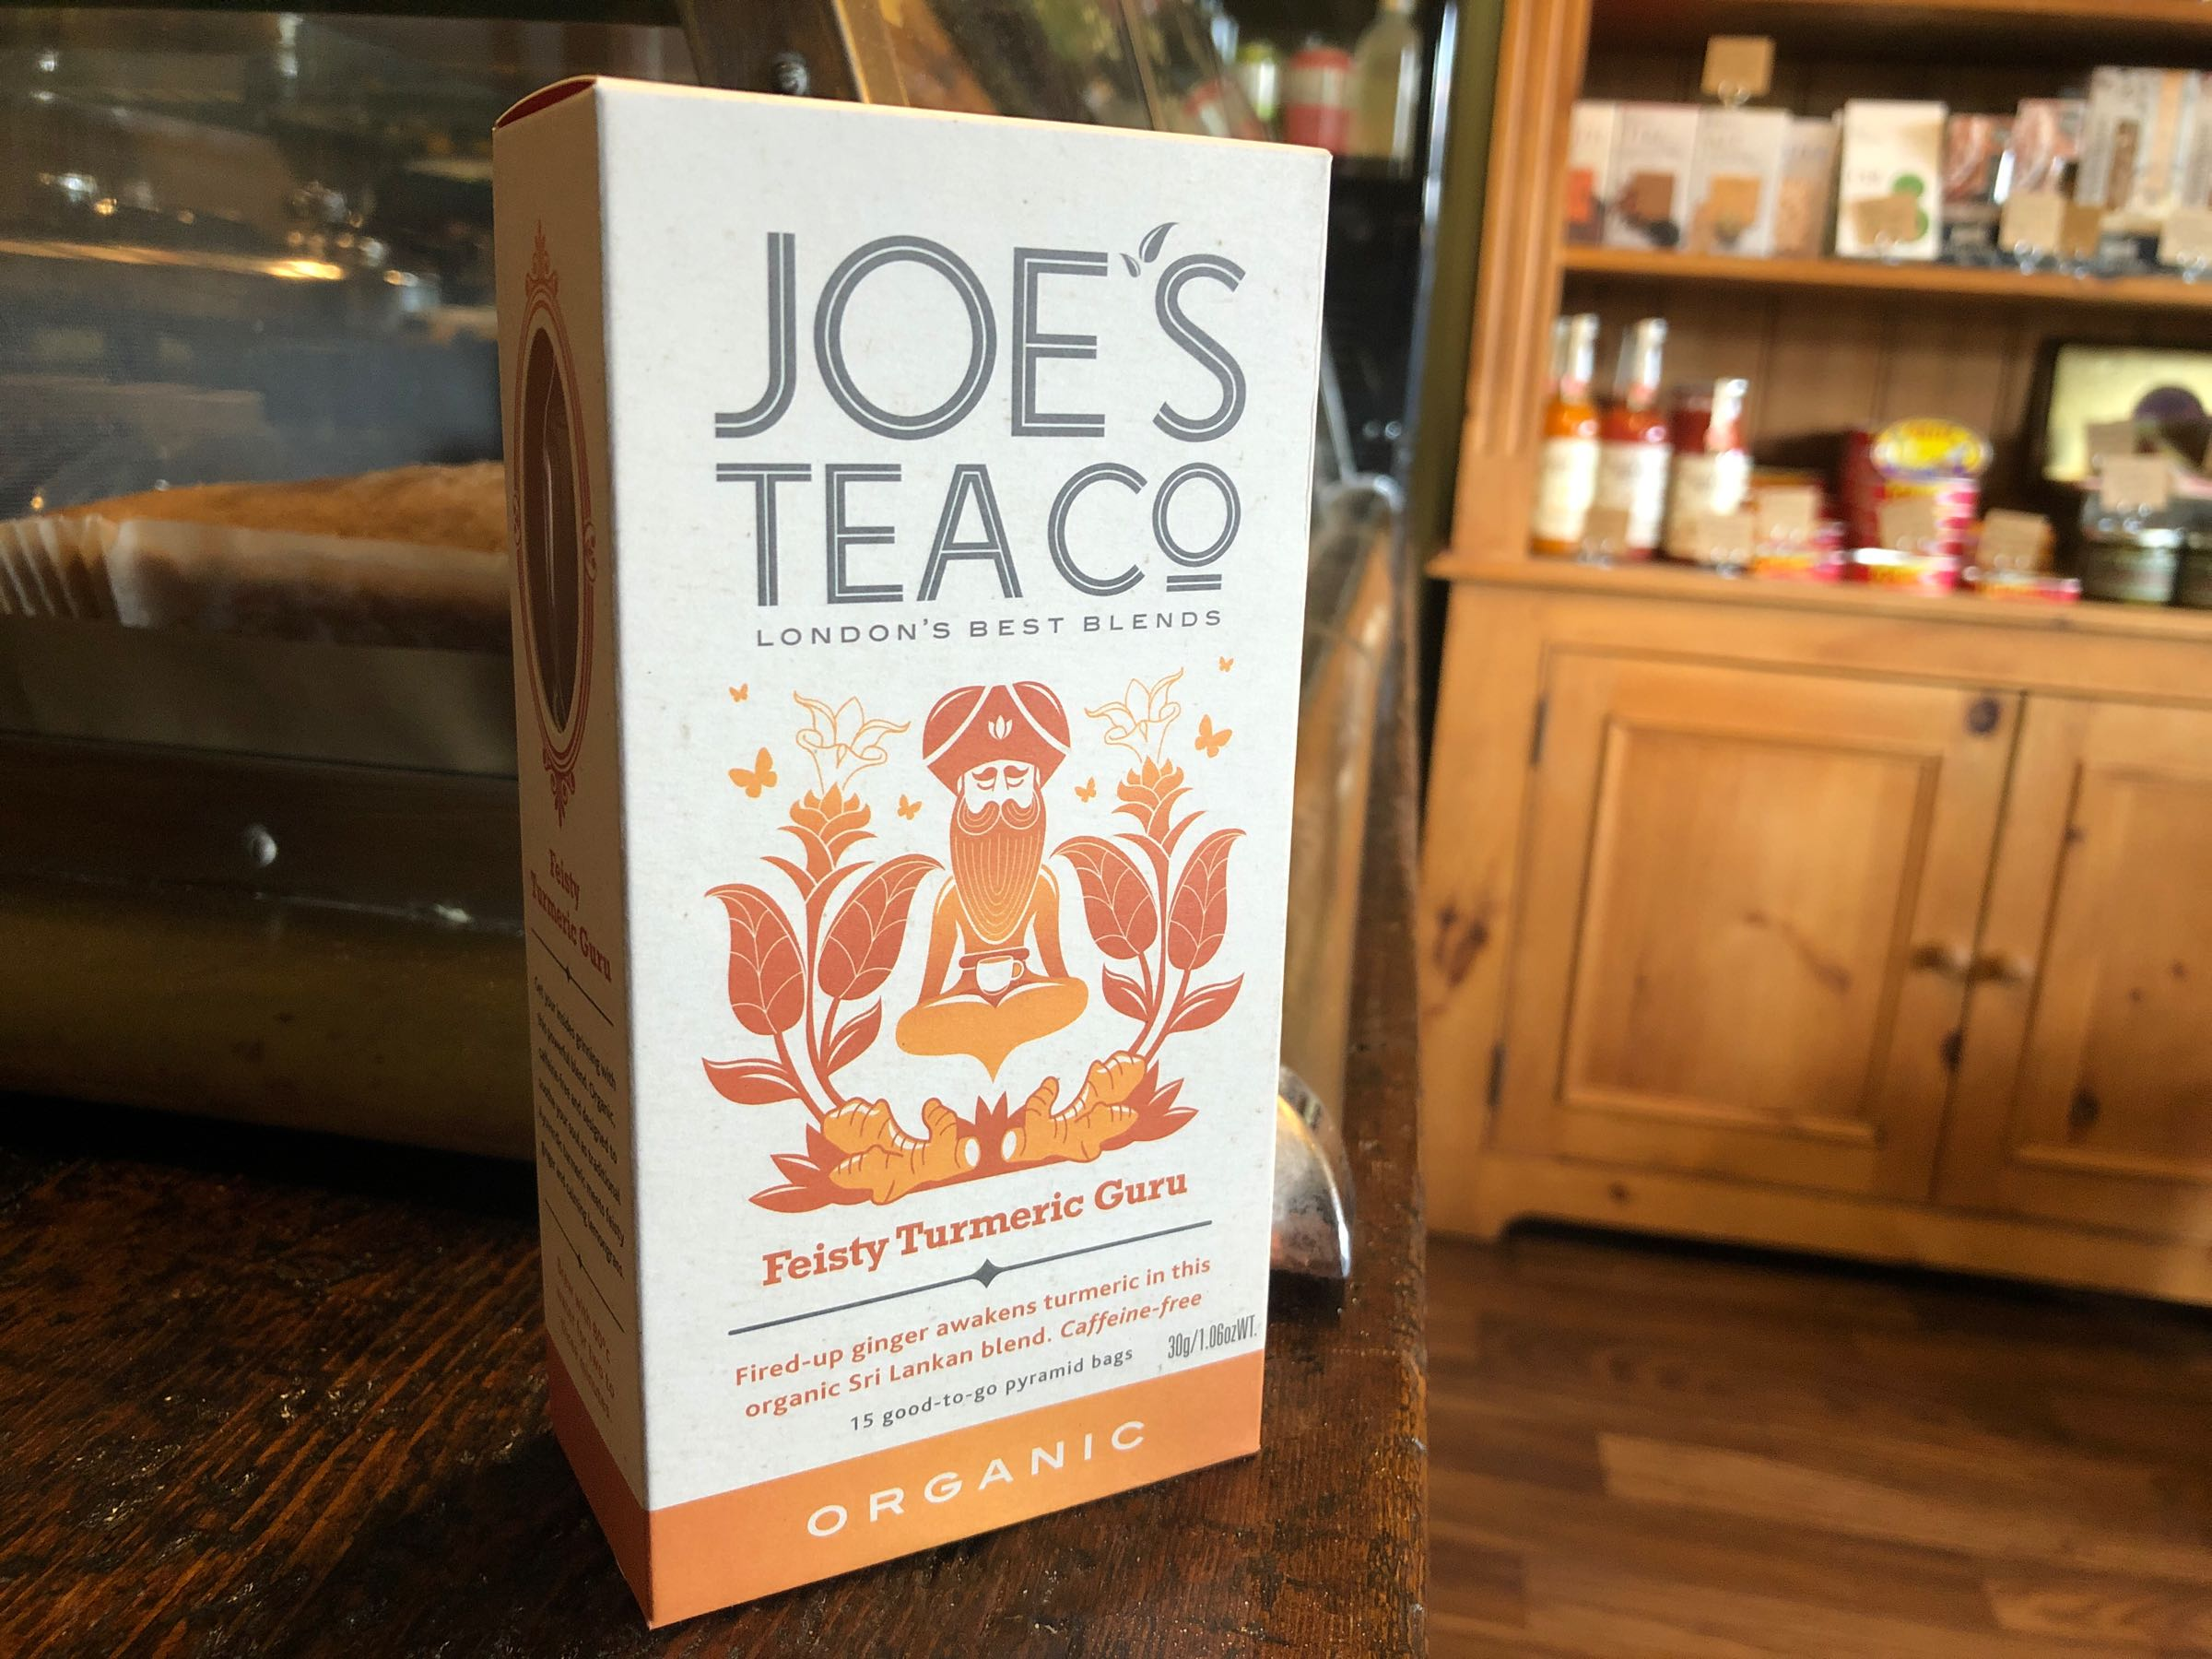 Joe's Tea Co. Feisty Turmeric Guru - Organic